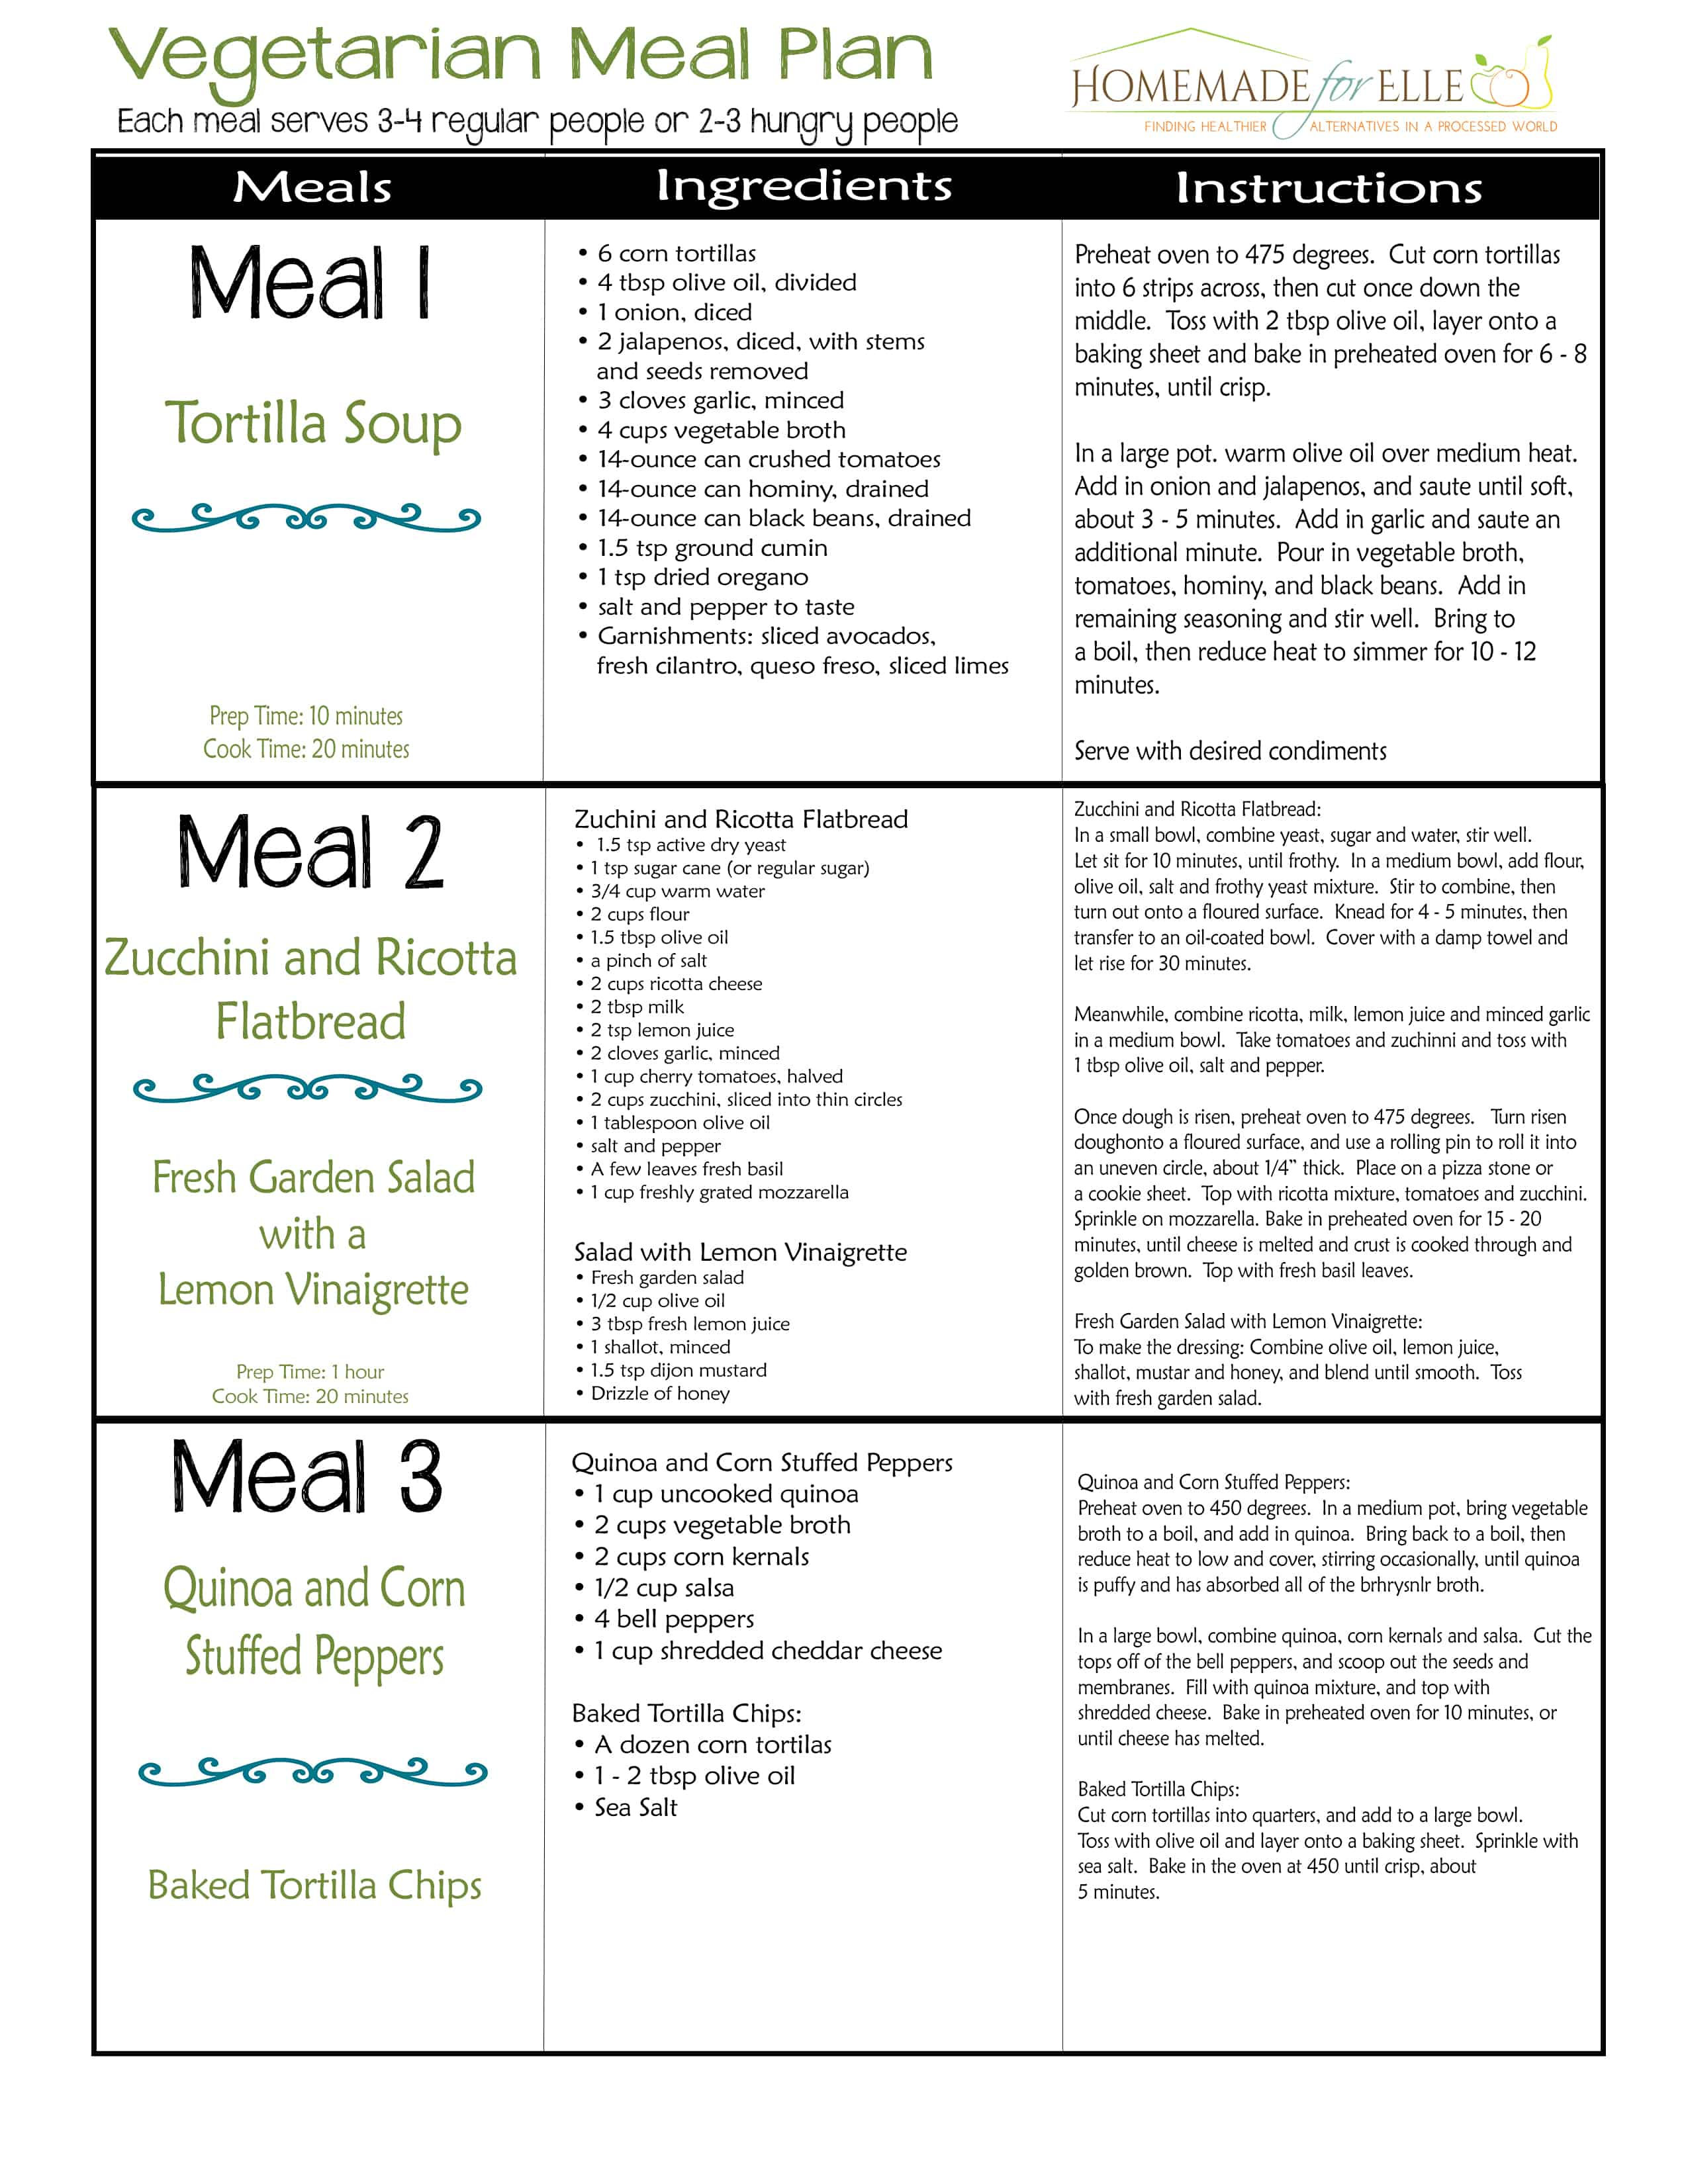 image of vegetarian meal plan